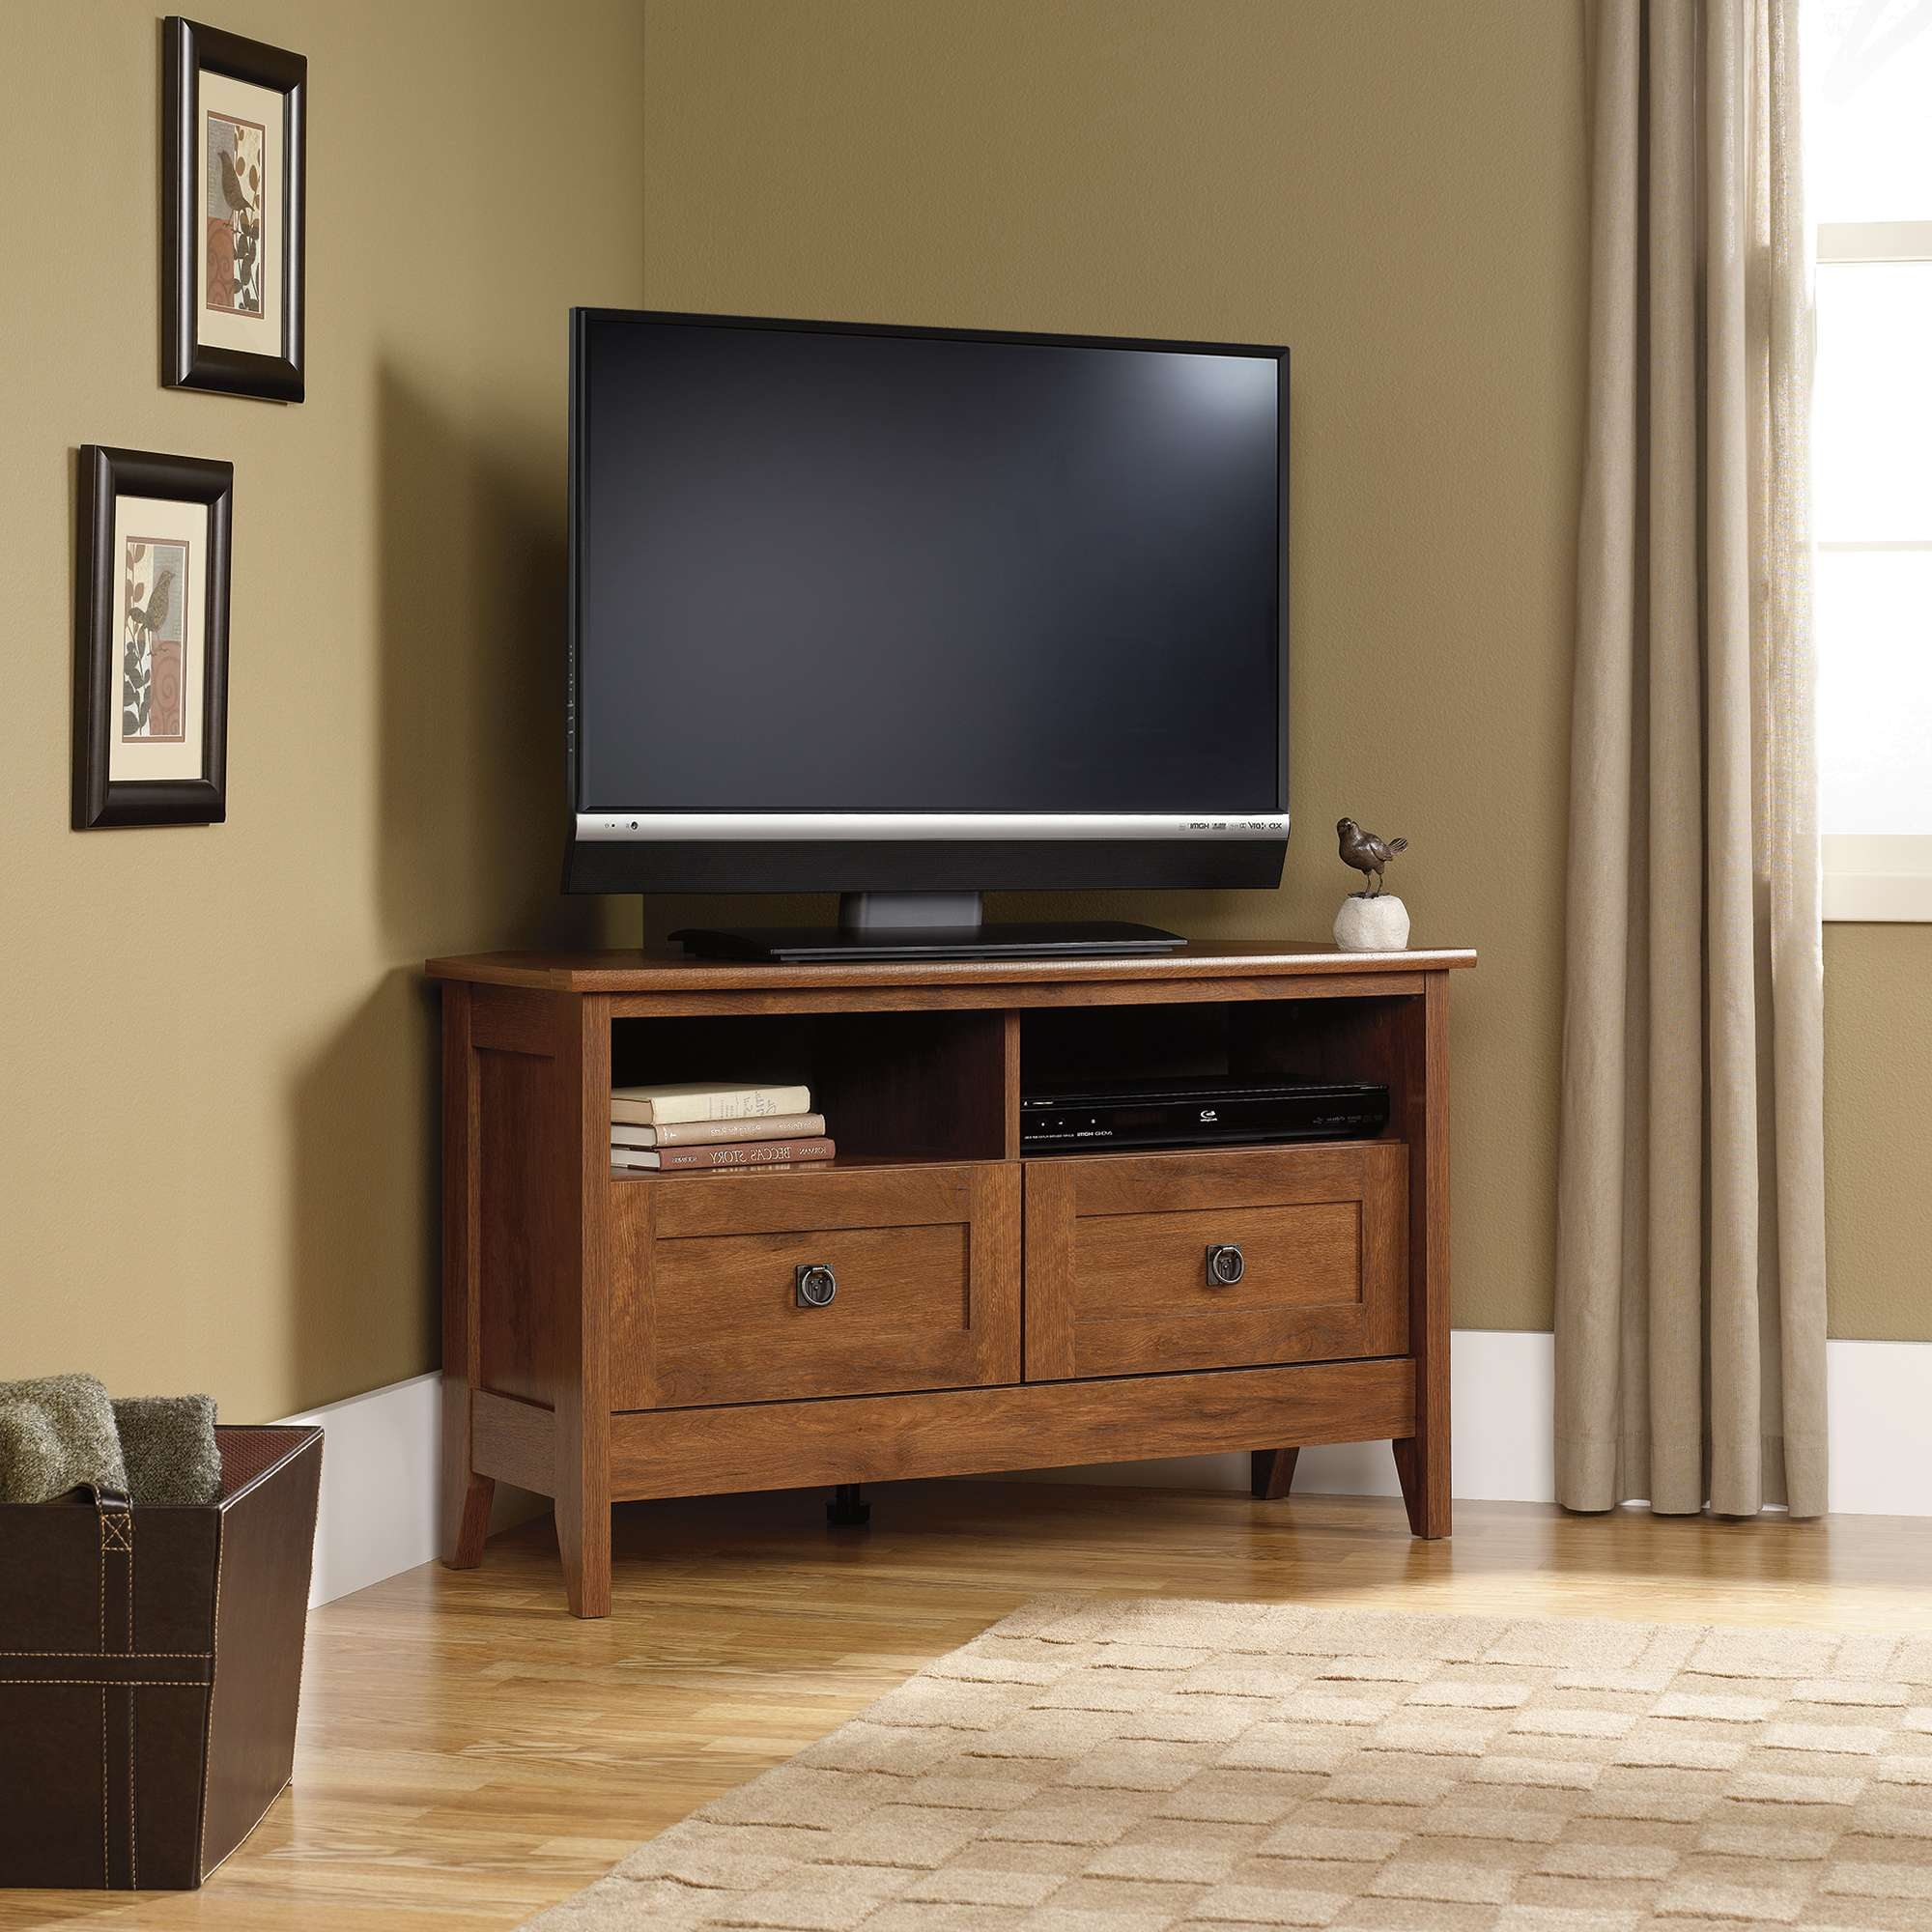 Tv Stand : 35 Frightening Corner Tv Stand Wood Photos Concept Within Black Wood Corner Tv Stands (View 10 of 15)